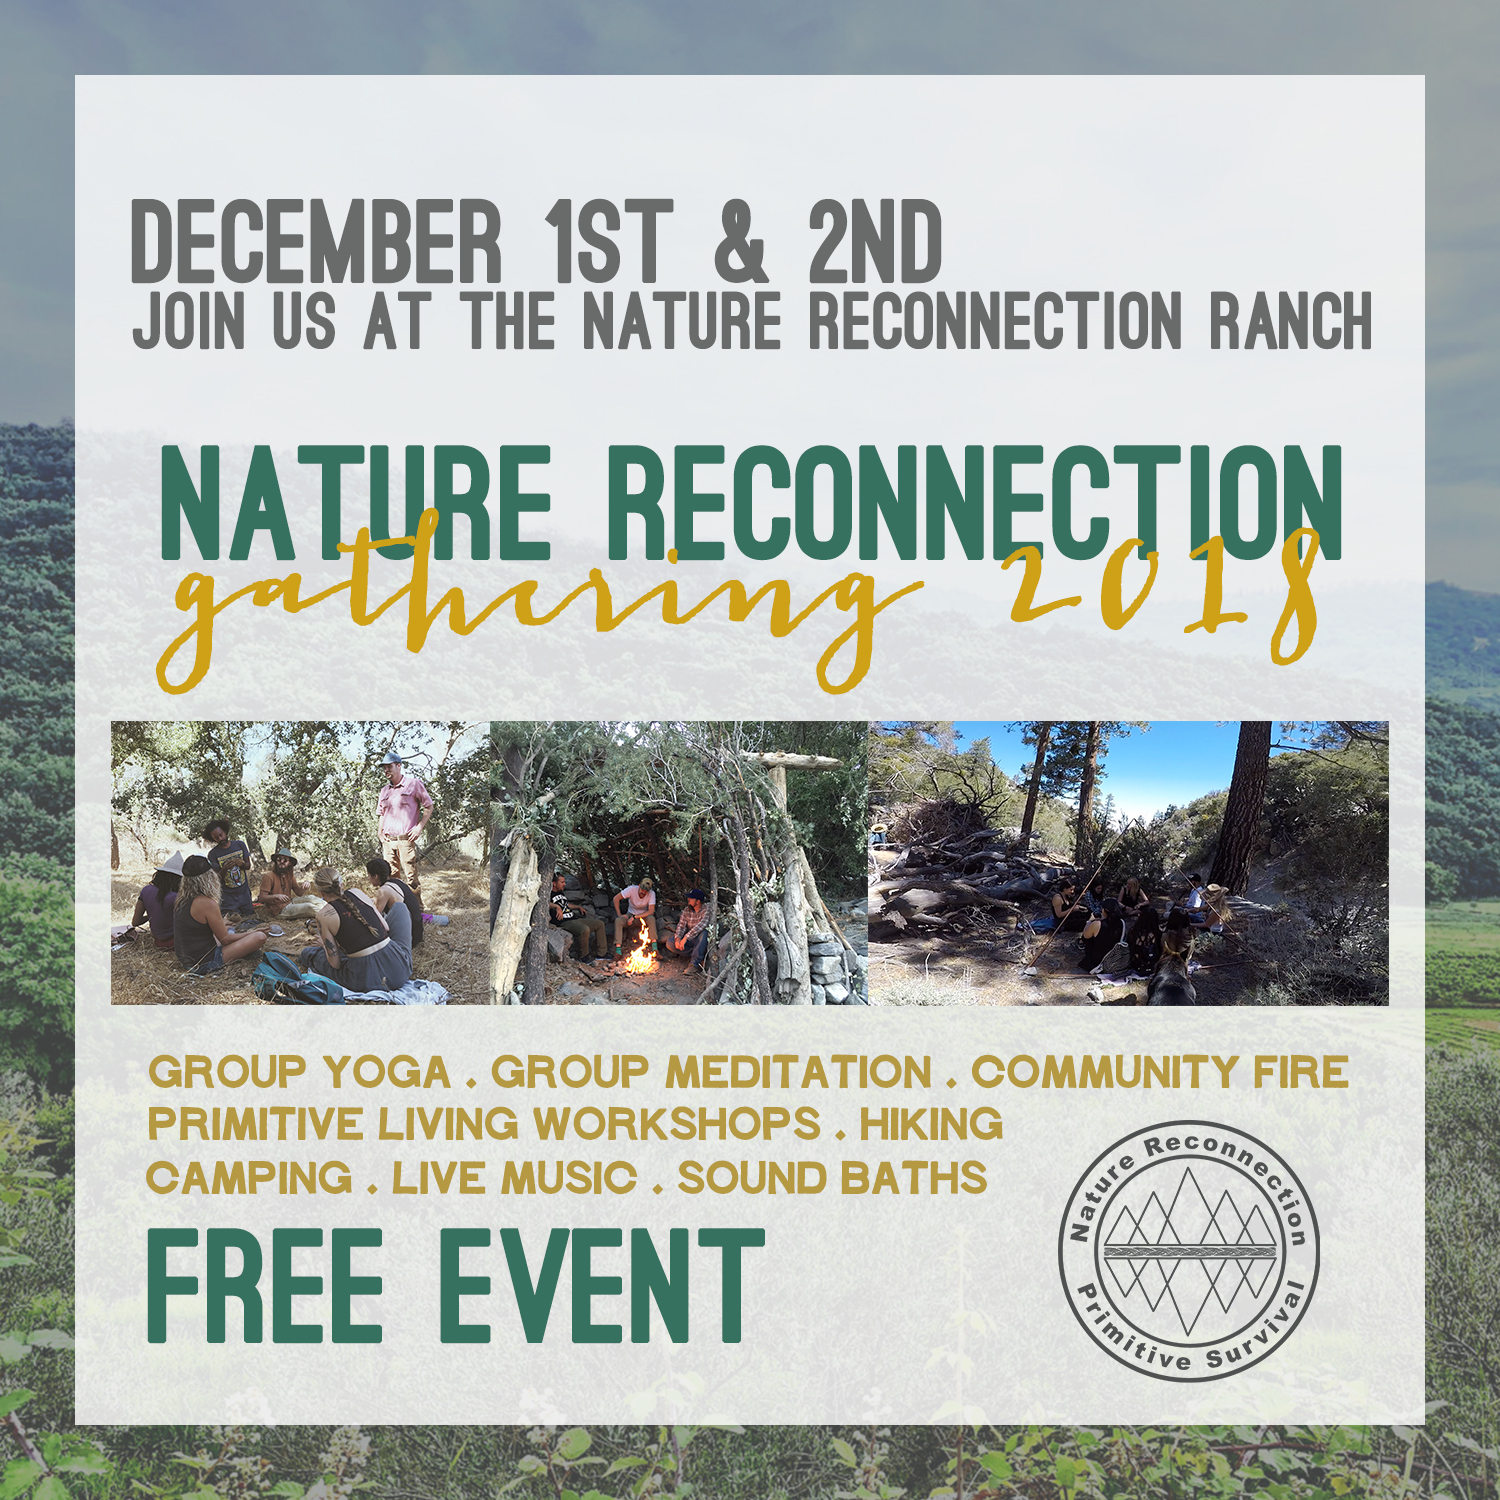 Nature Reconnection Gathering Flyer.jpeg